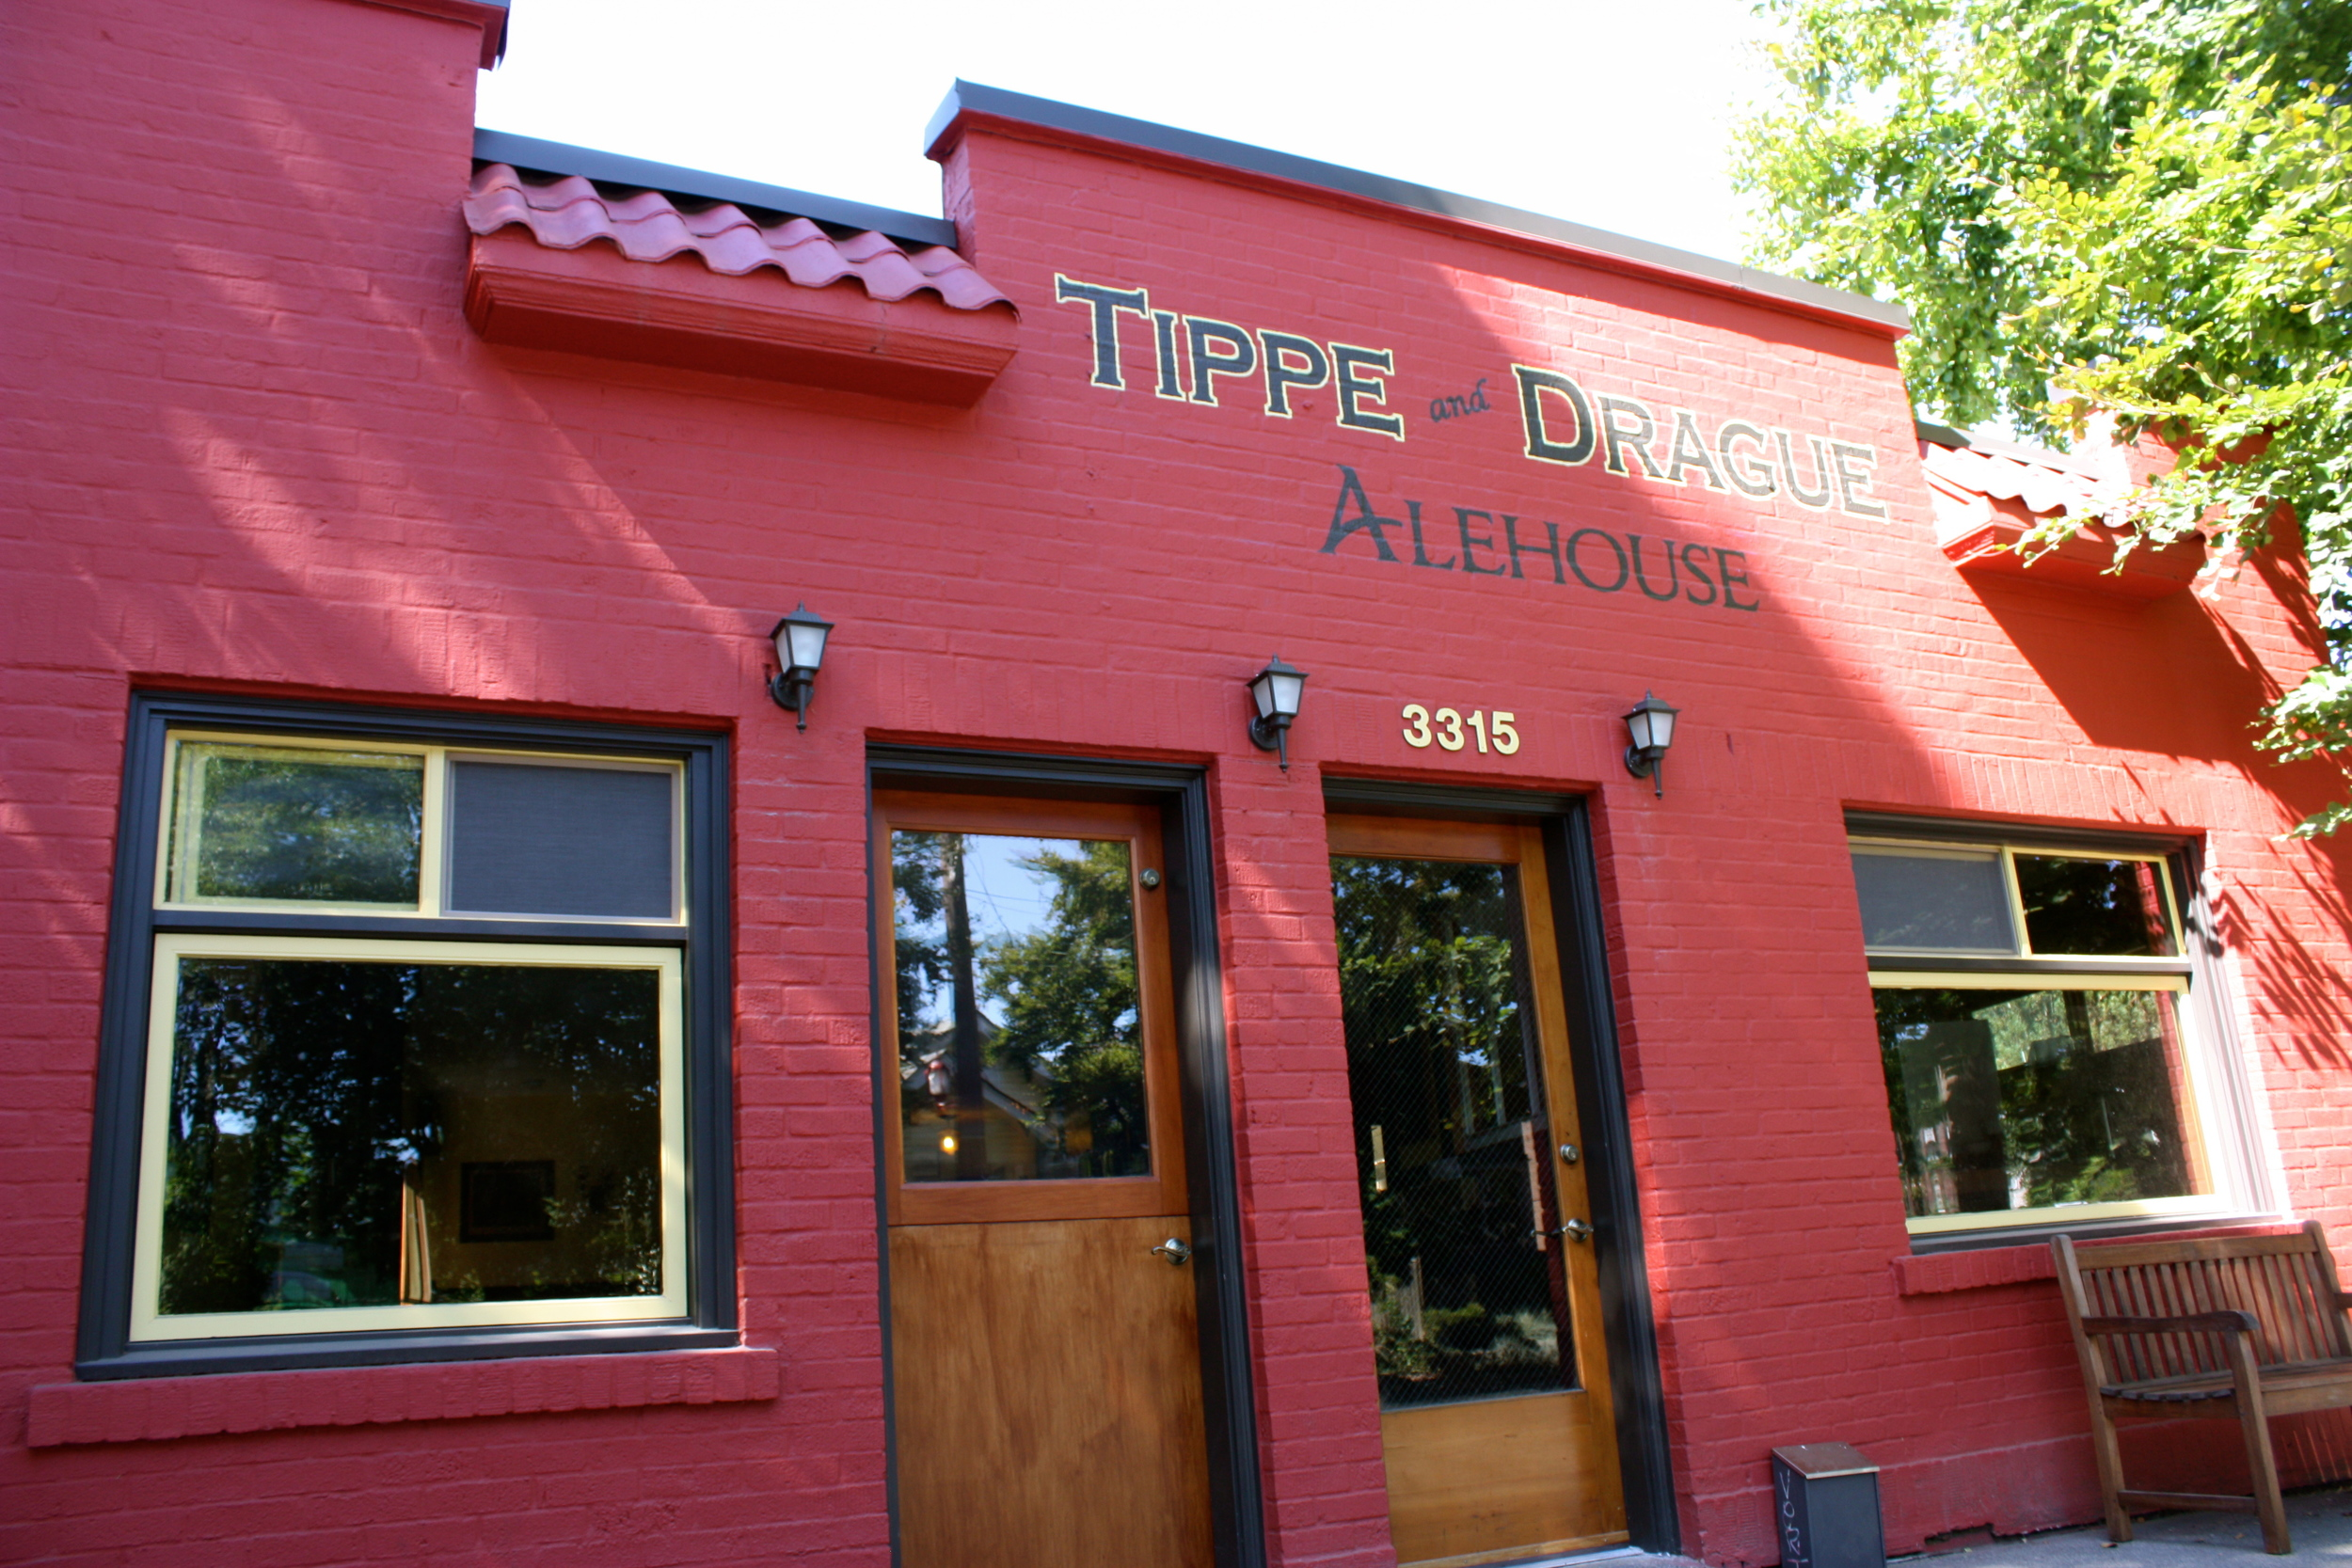 Tippe and Drague Alehouse - Beacon Hill